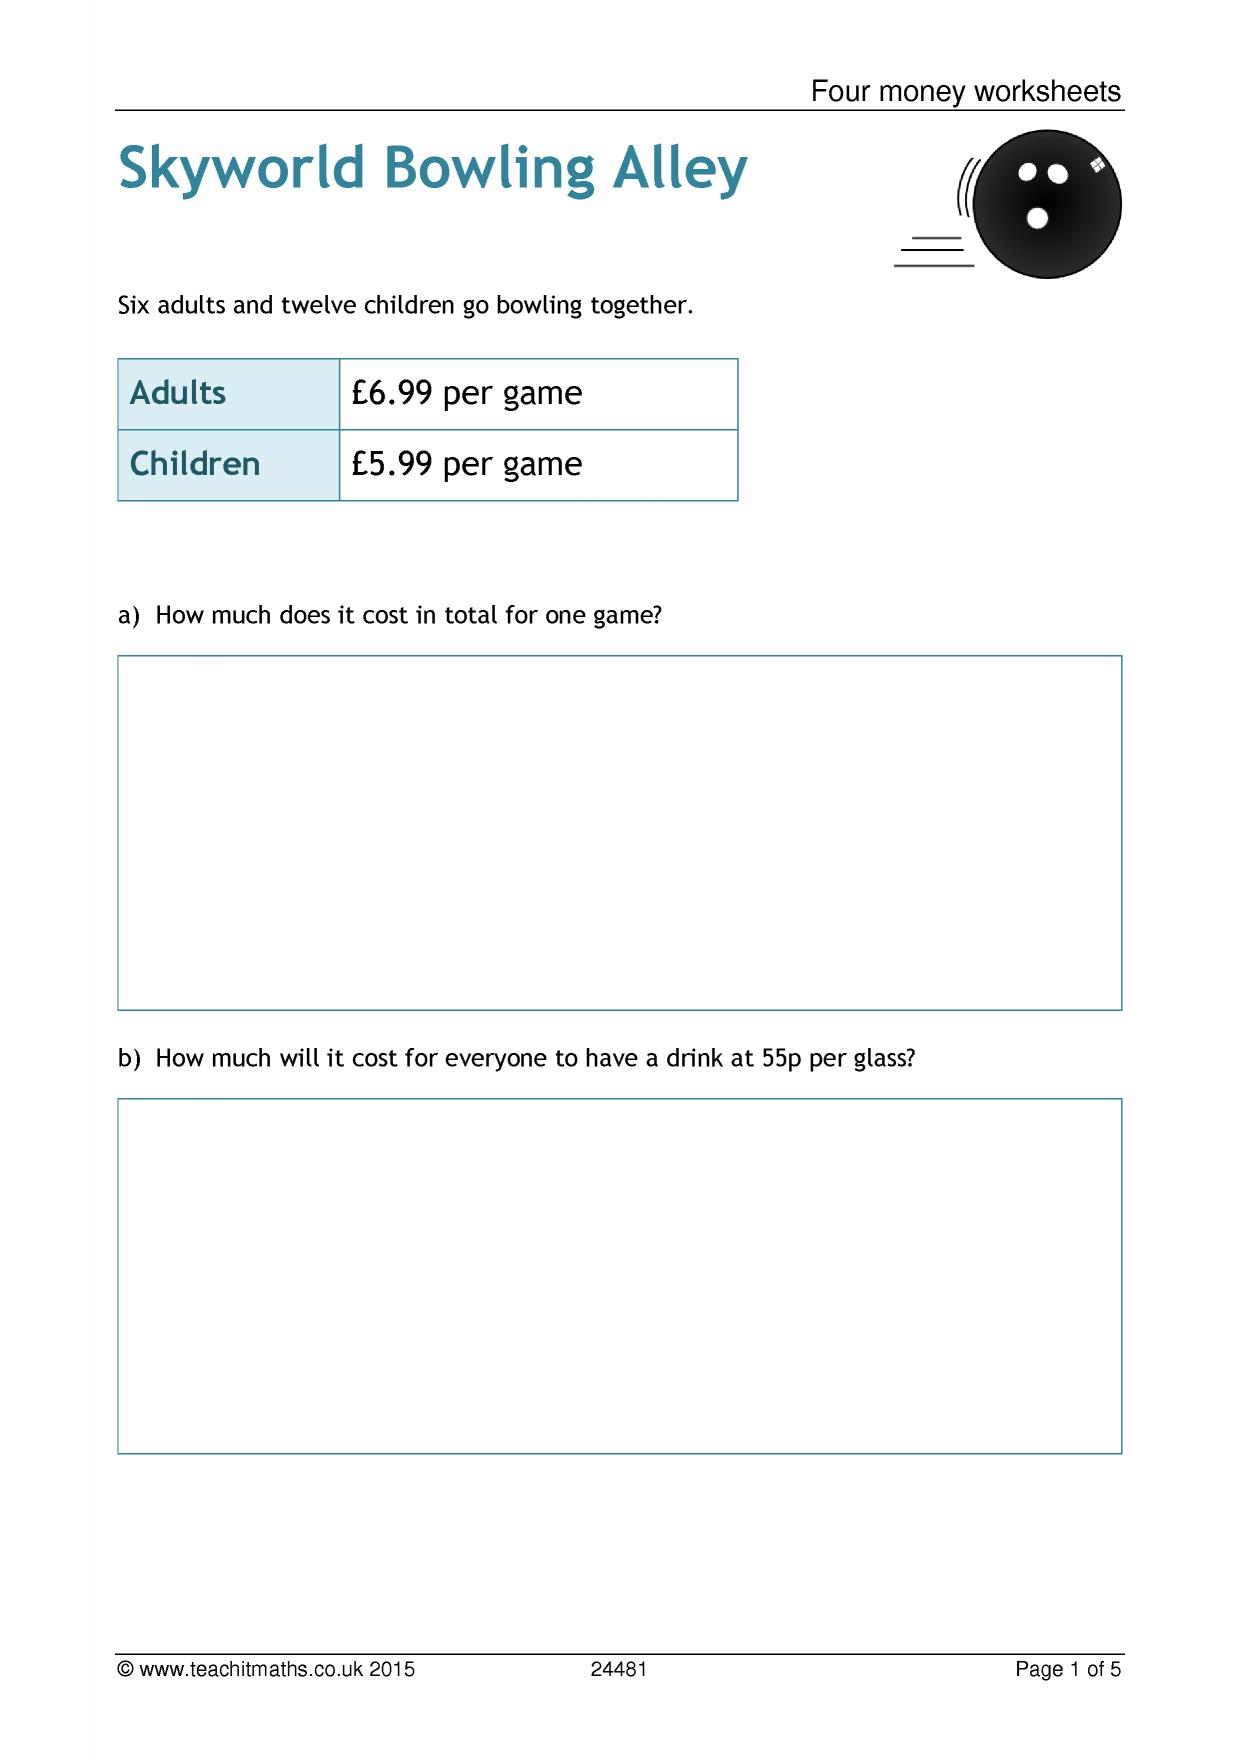 Four Money Worksheets